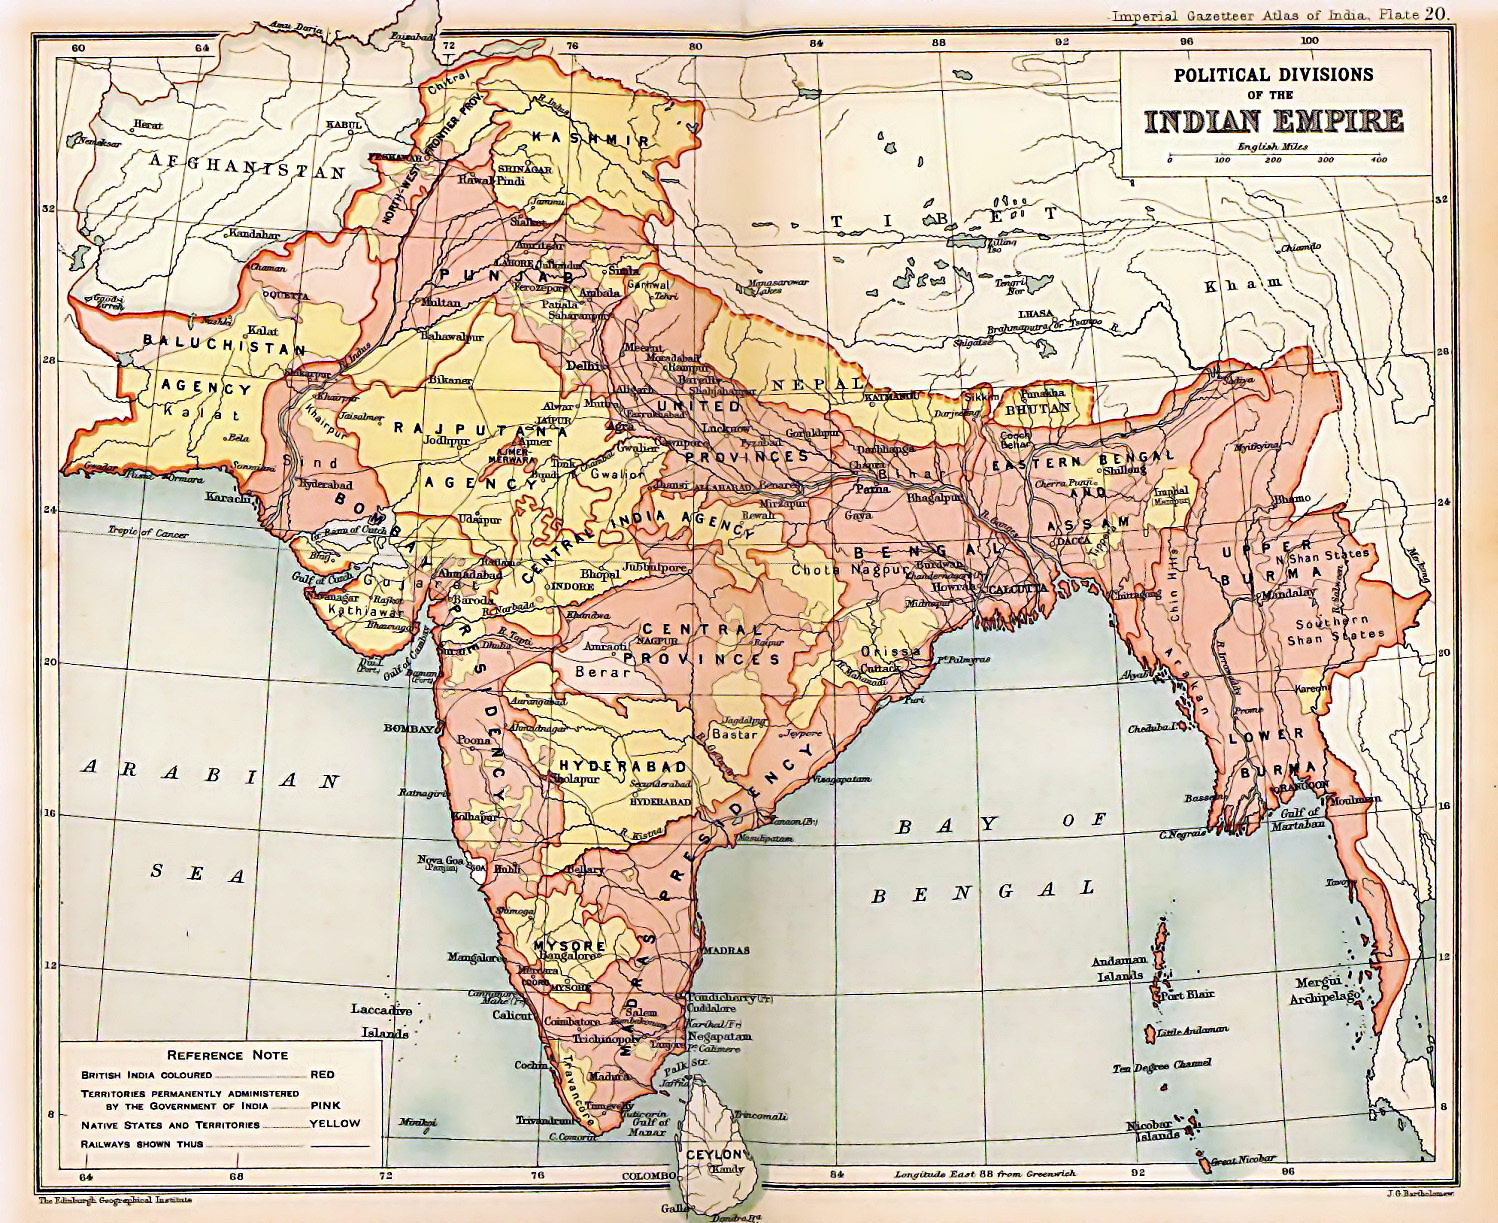 British map published in 1909 showing the Indo-Tibetan traditional border (eastern section on the top right)